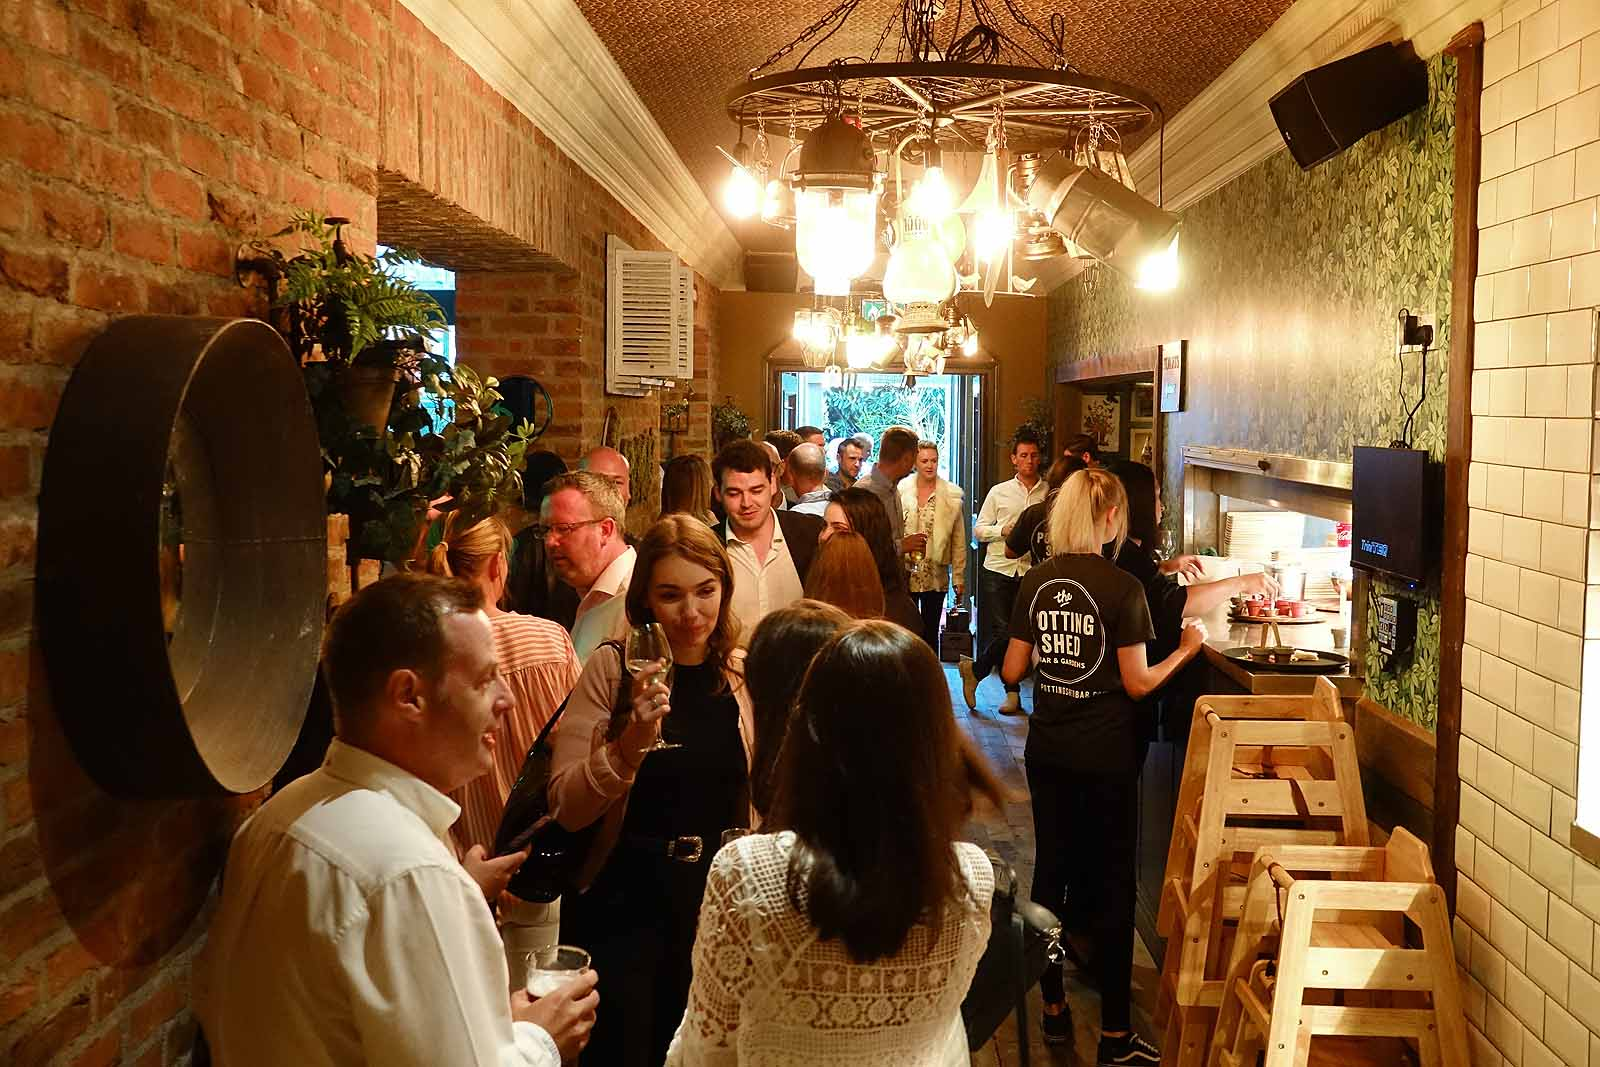 The Potting Shed Opens in Harrogate